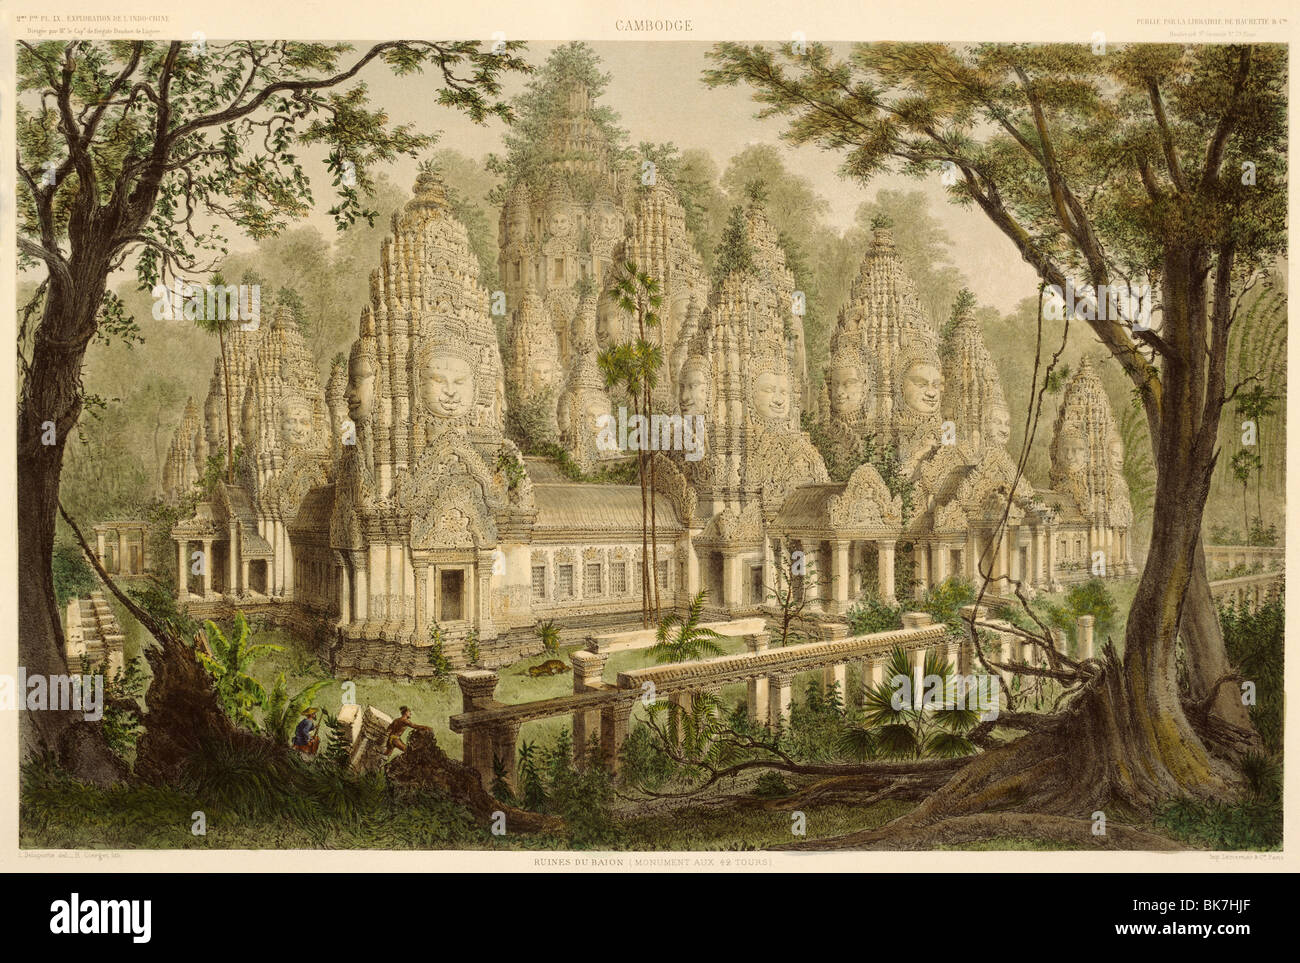 Engraving of the Bayon from Exploration de L'indo-Chine by Delaporte, Cambodia, Indochina, Southeast Asia, Asia - Stock Image